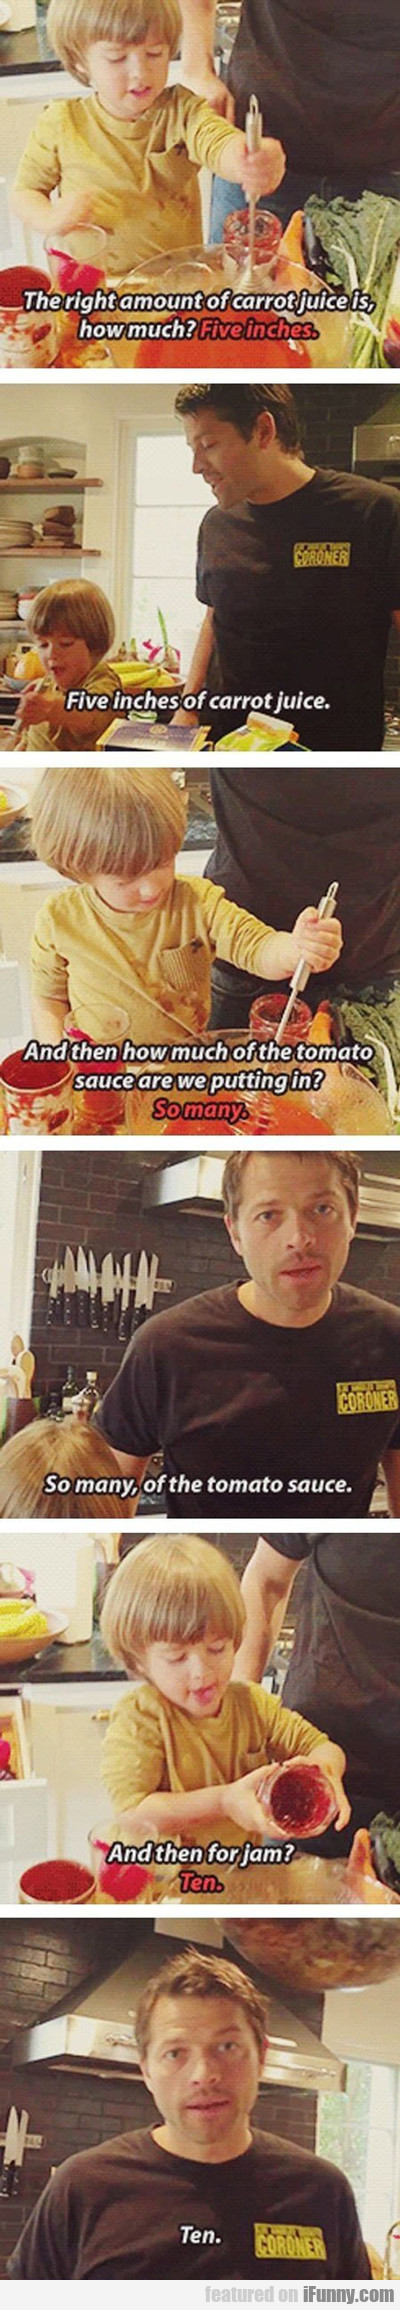 The Right Amount Of Carrot Juice Is...